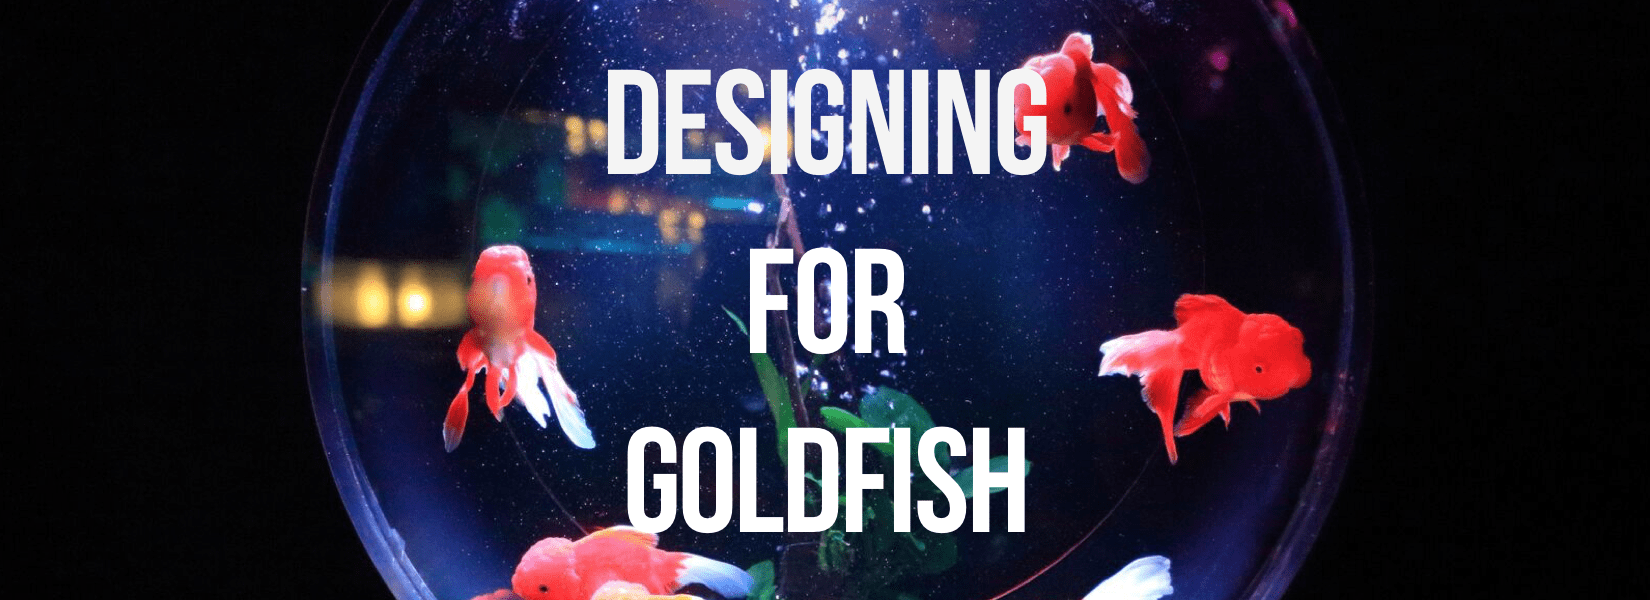 Designing for Goldfish